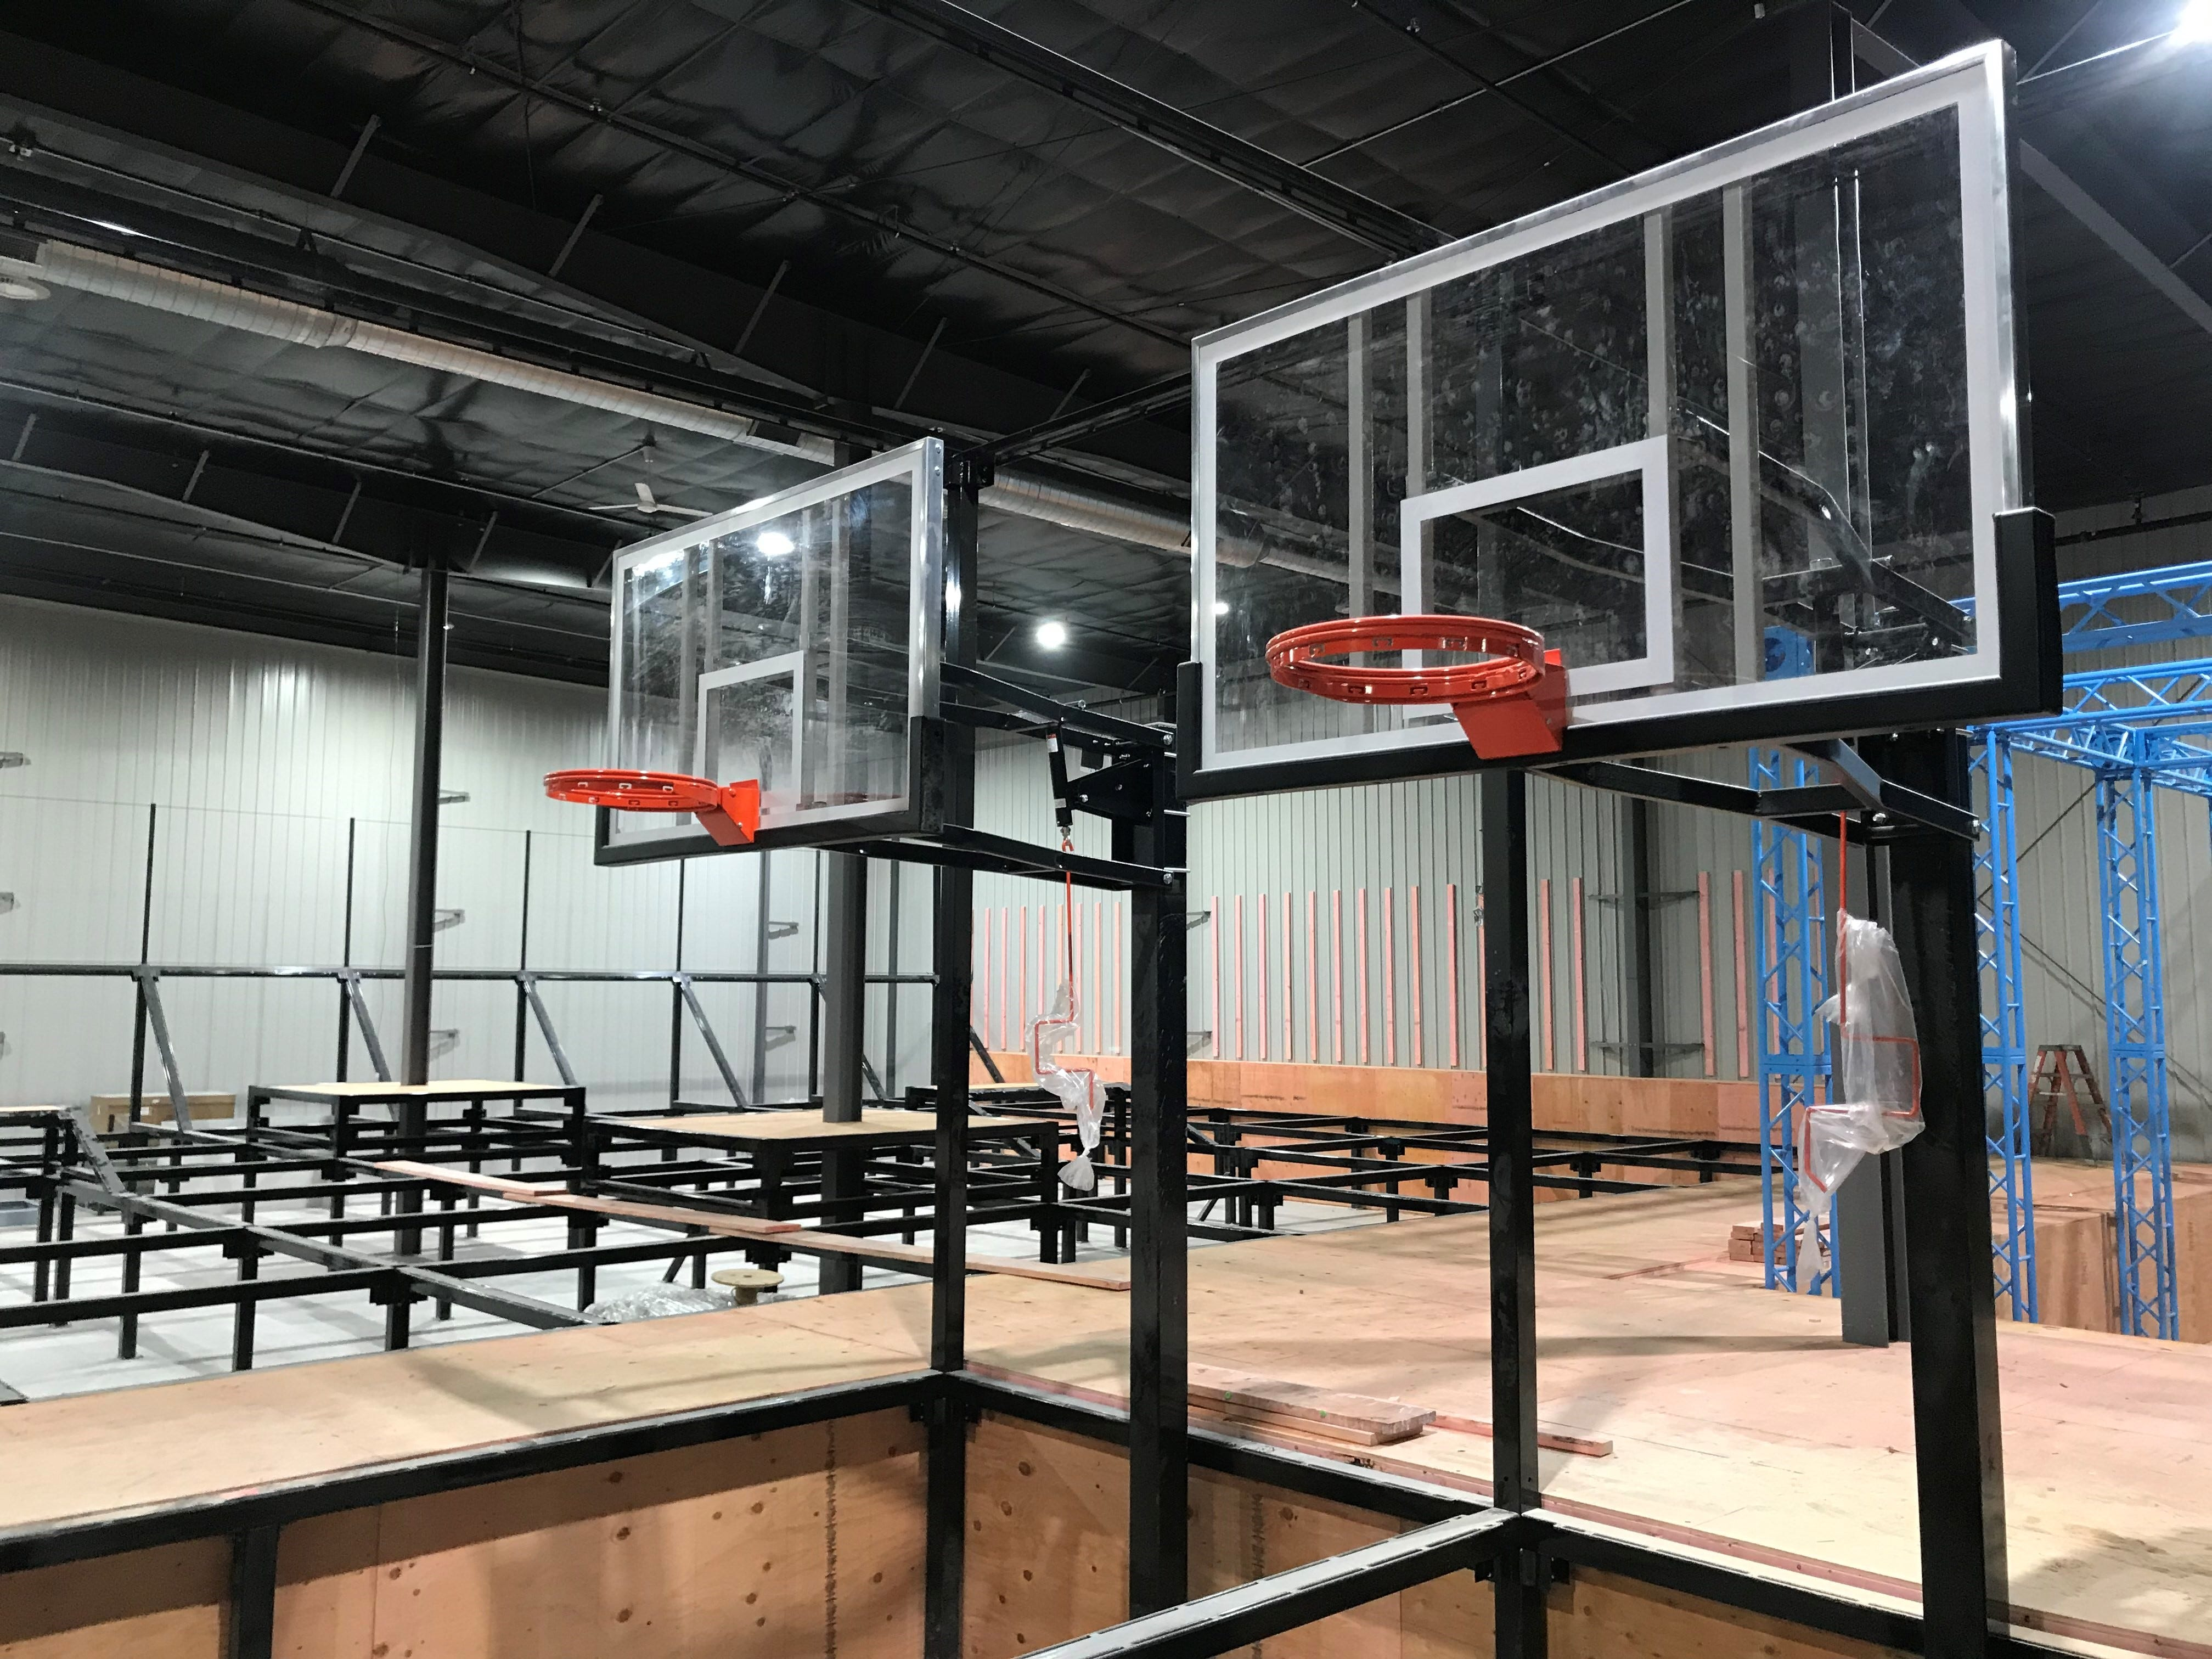 The trampoline park will include basketball hoops, where kids can jump and shoot the ball.